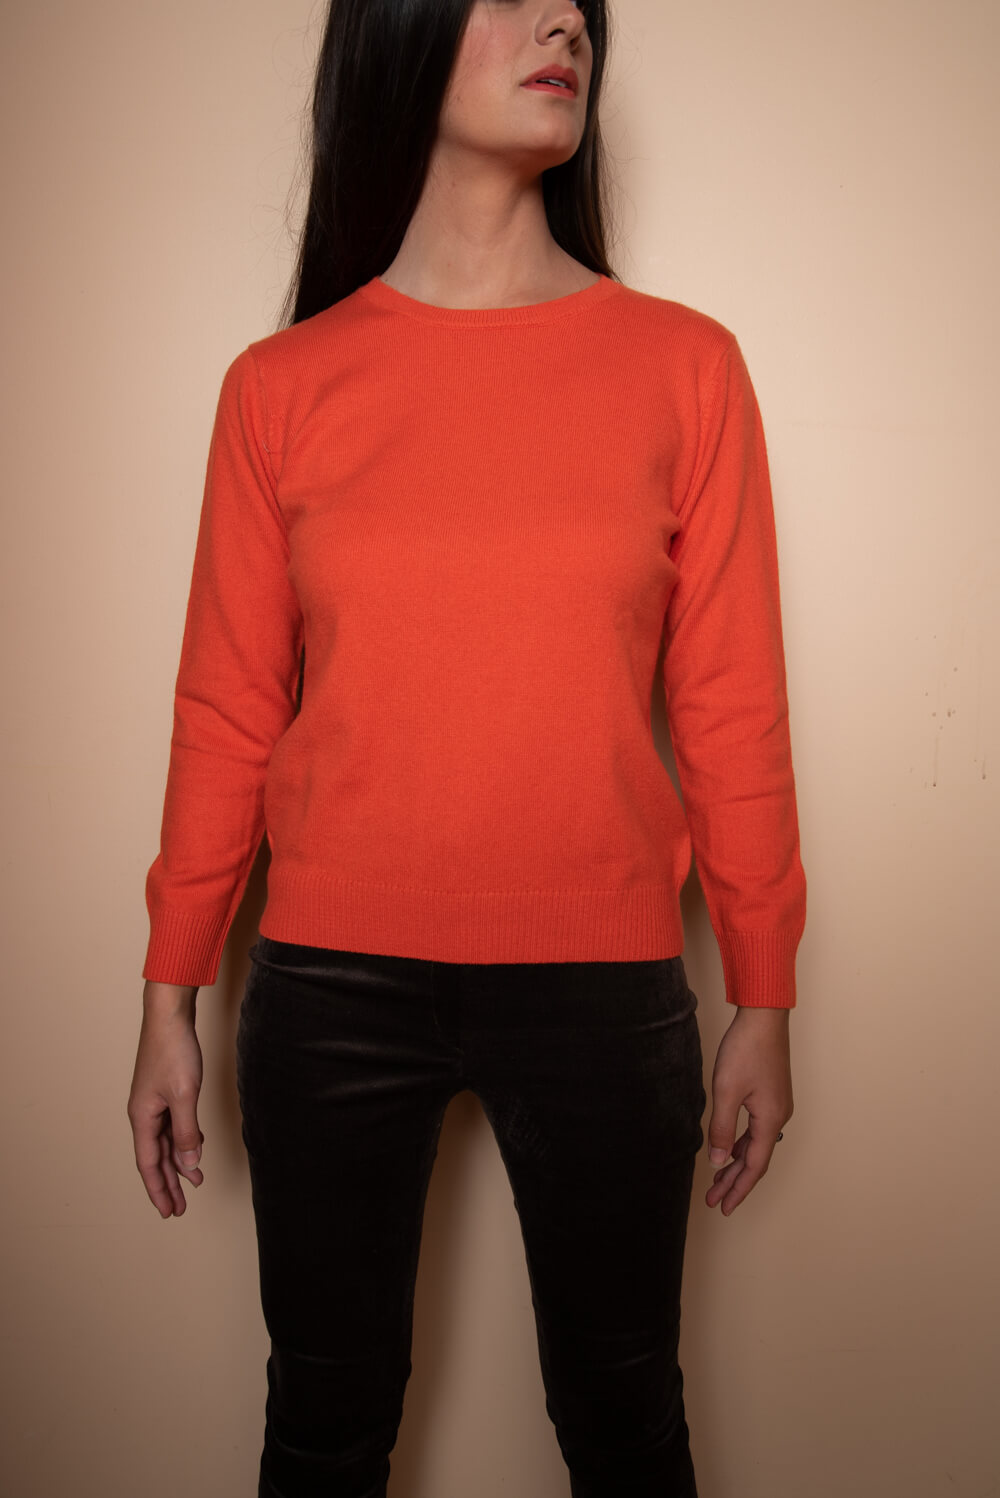 orange cashmere jumper | fine knitwear